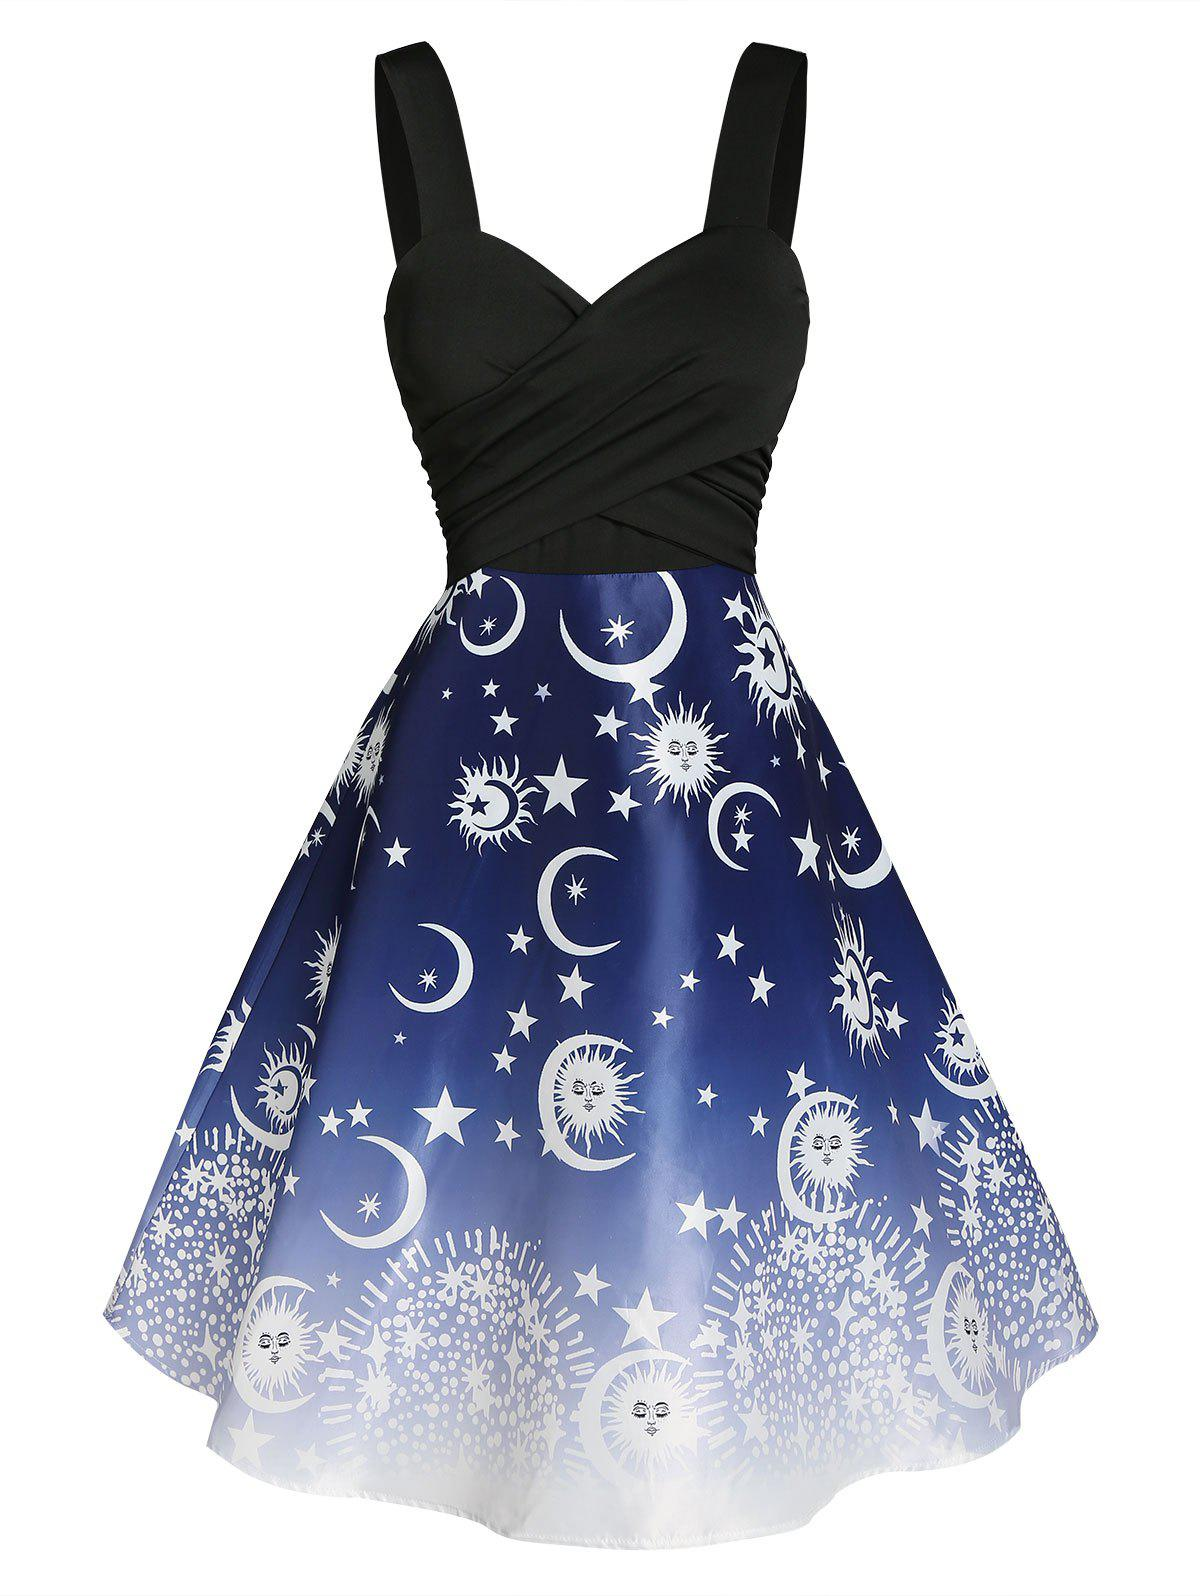 Sun and Moon Print Crossover Dress - multicolor A XL